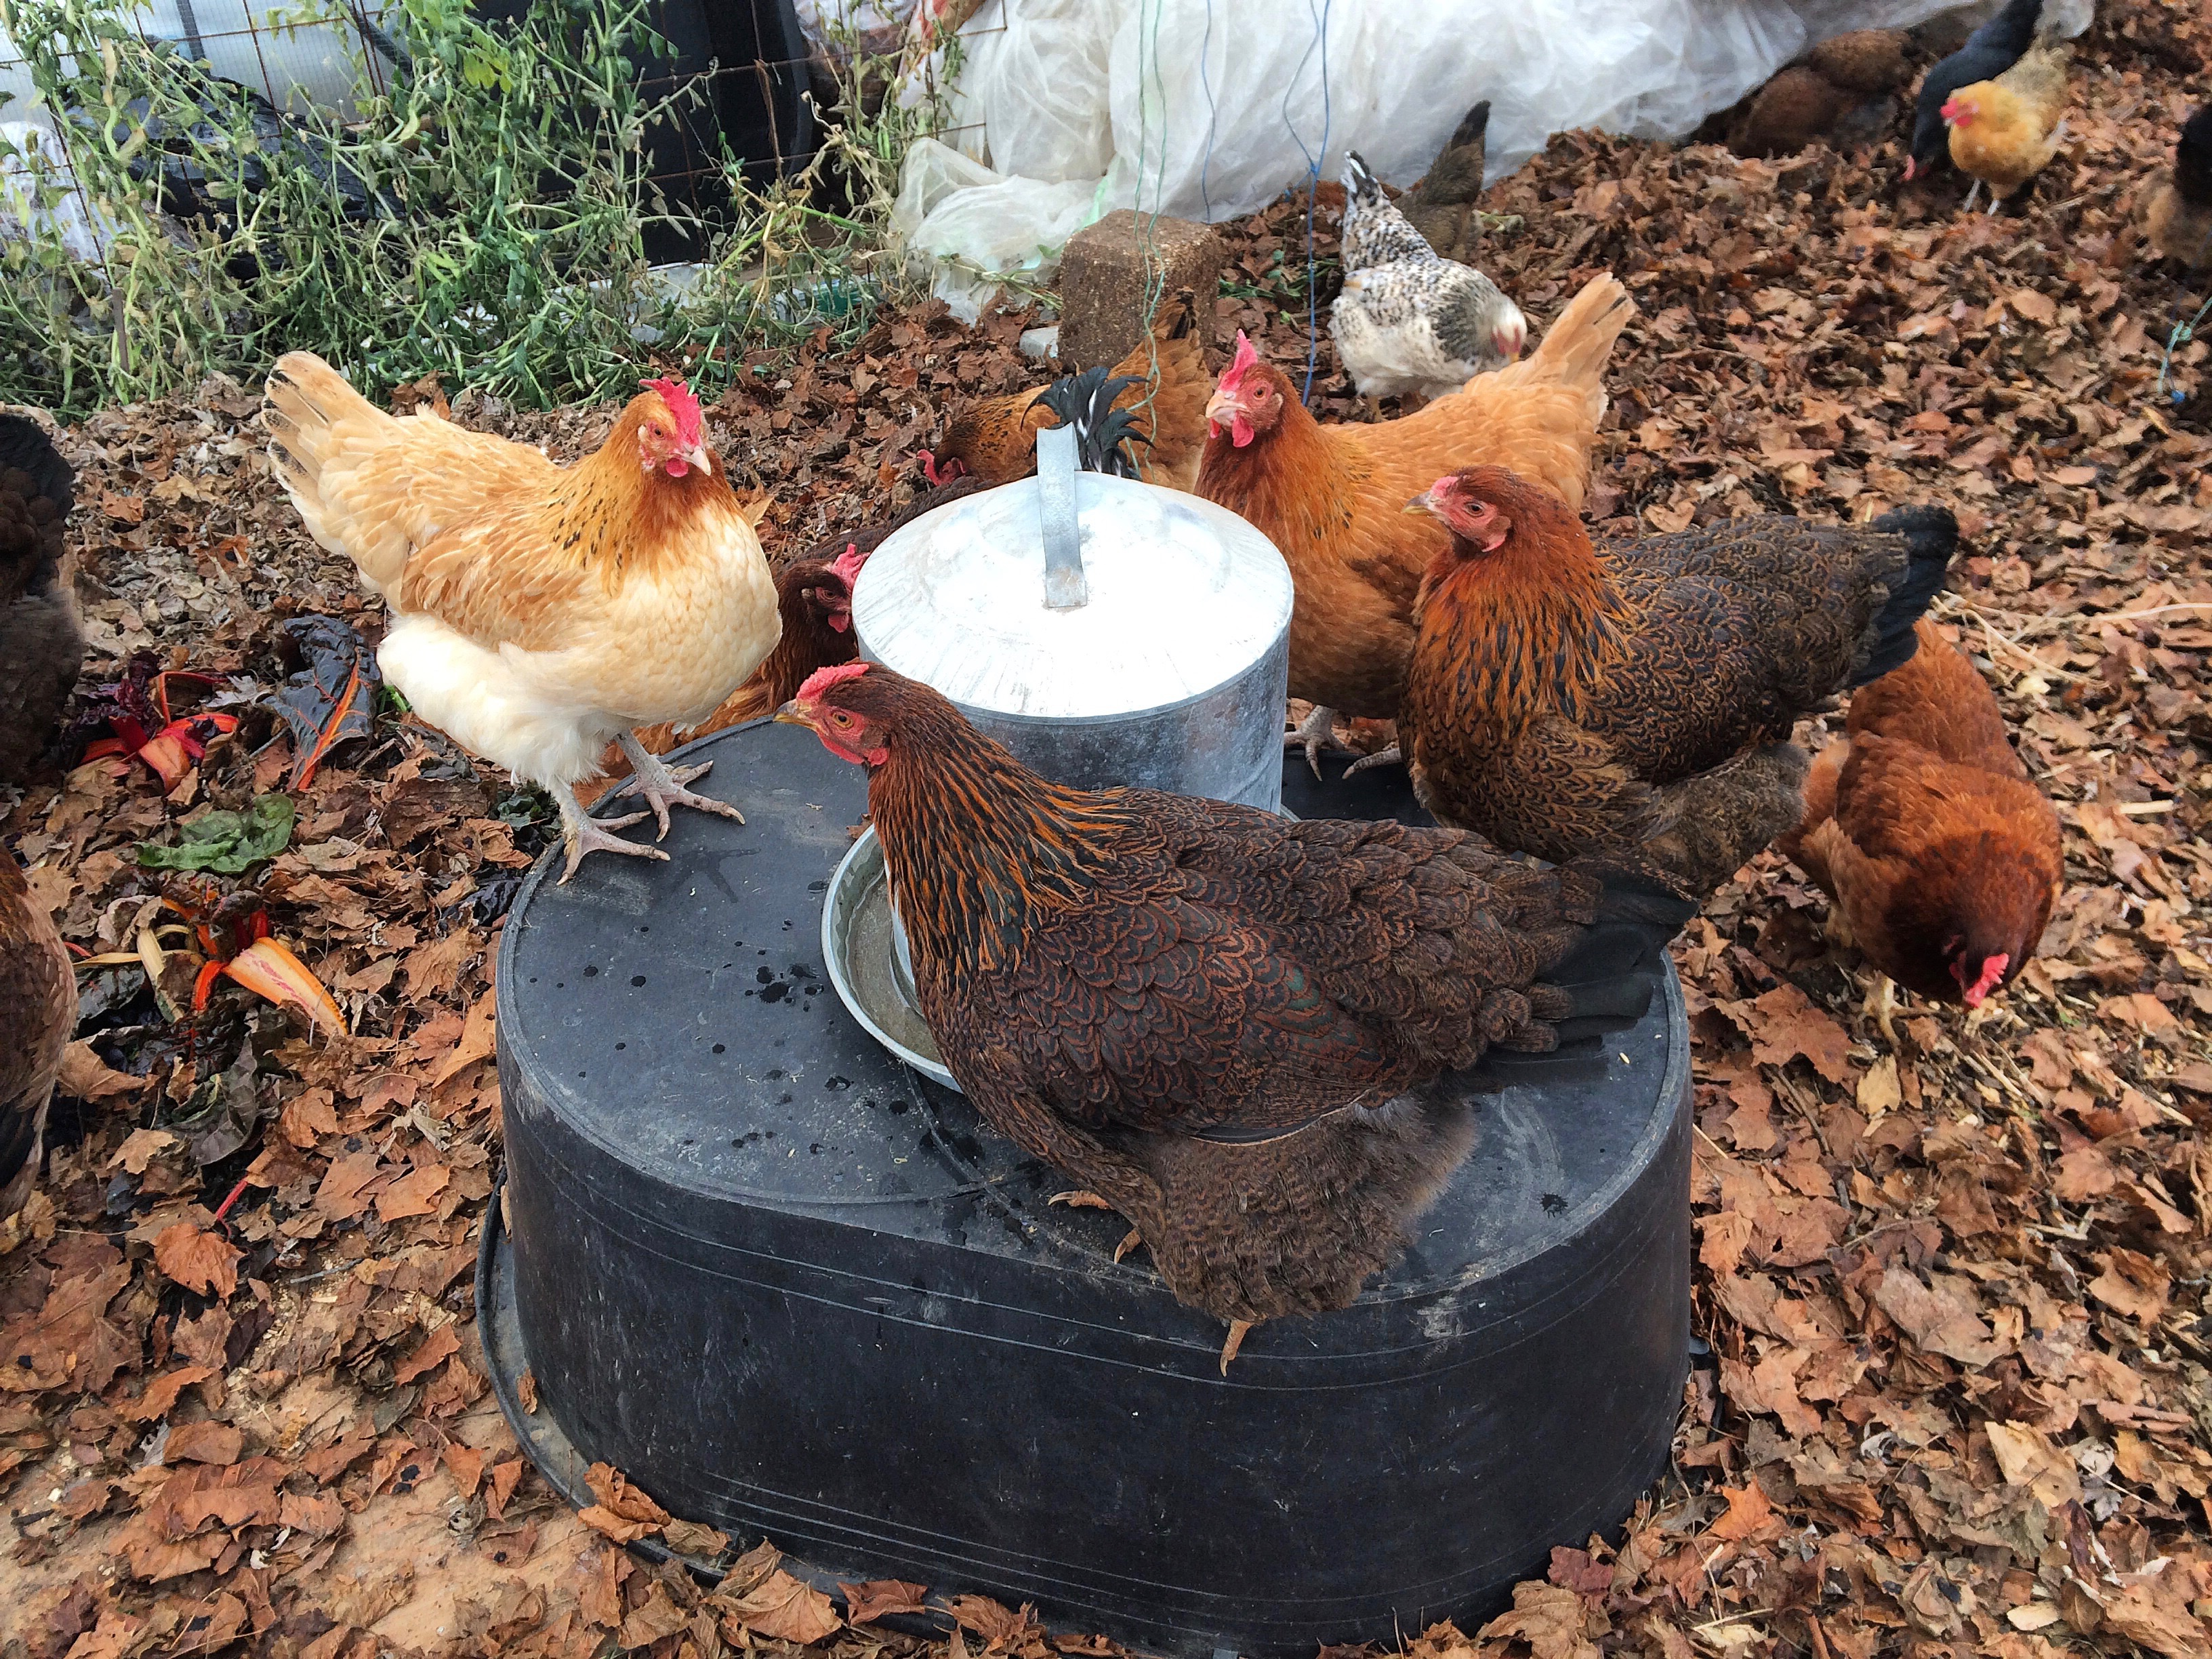 Chickens in hoop house drink from a waterer